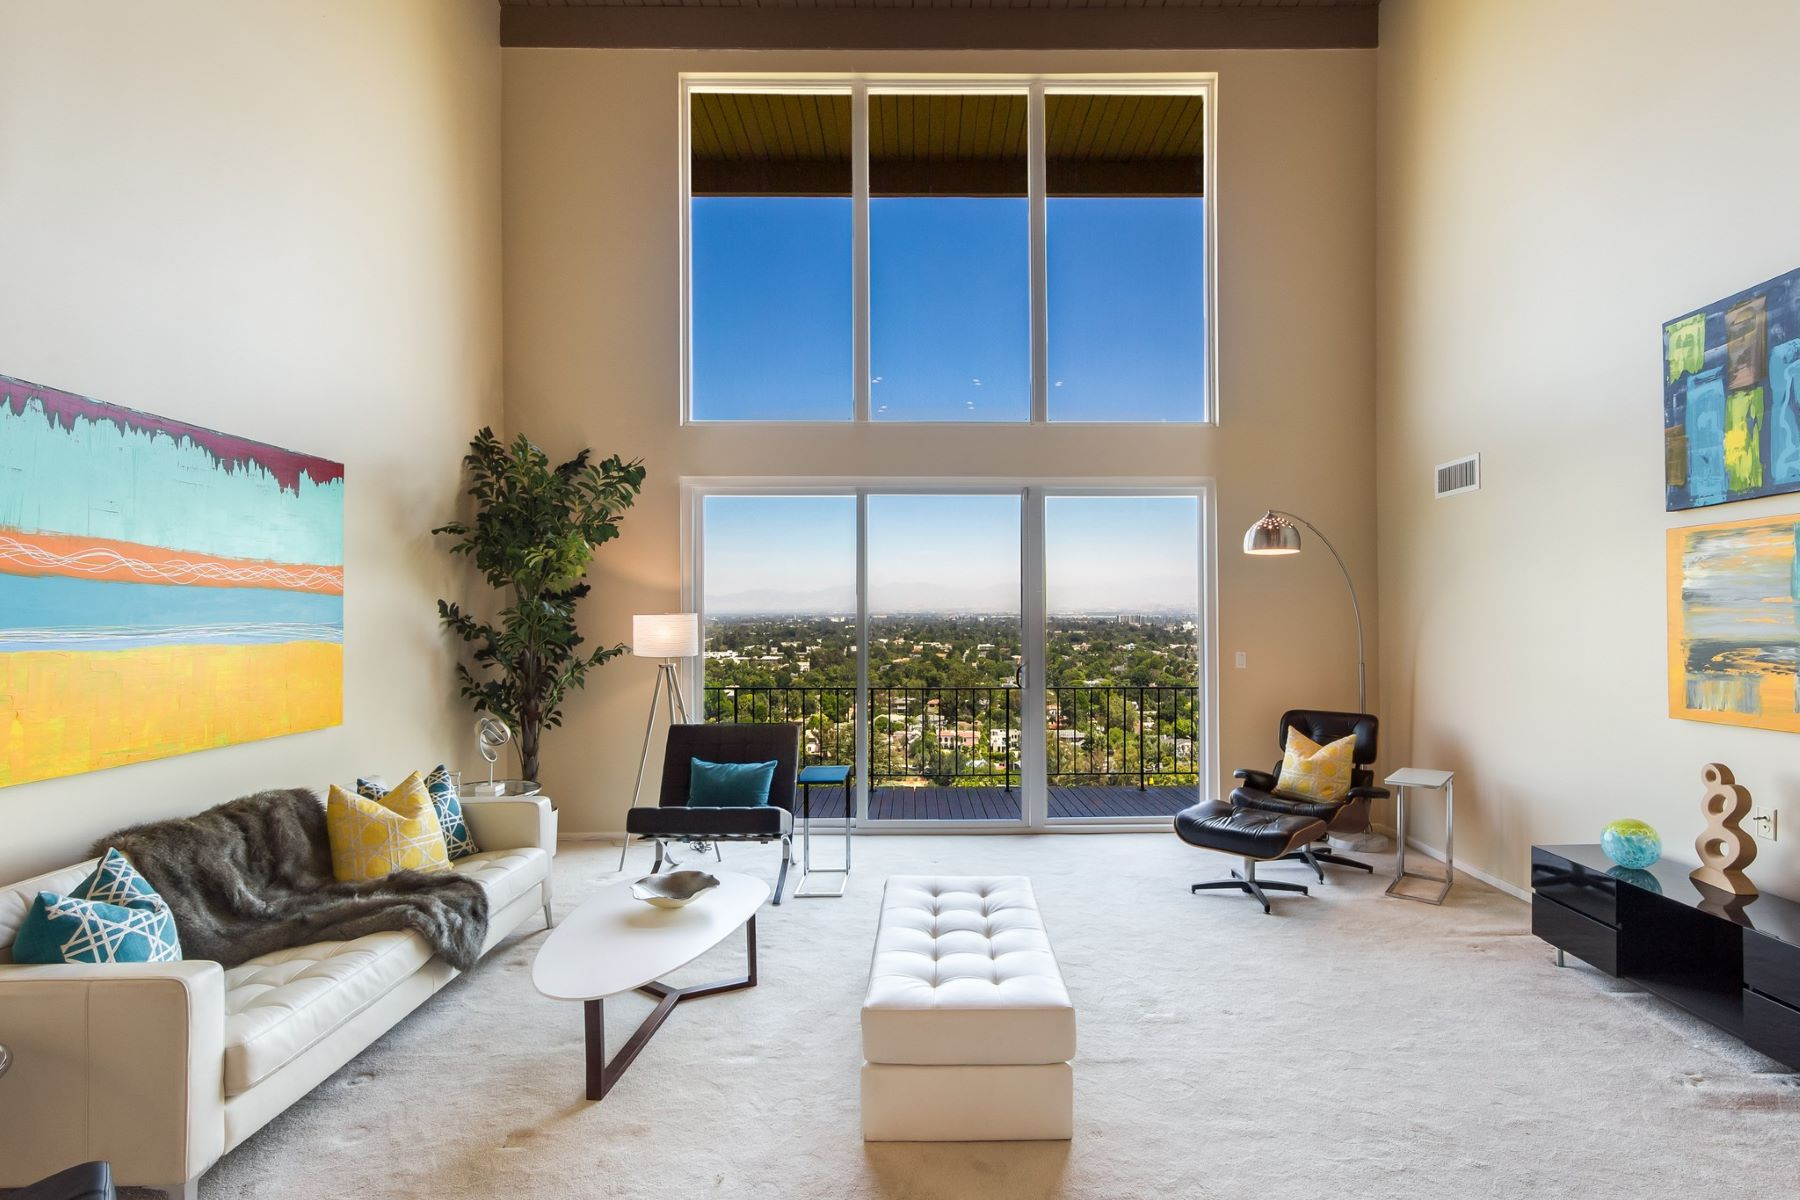 Single Family Home for Sale at 11559 Laurelcrest Dr Studio City, California 91604 United States